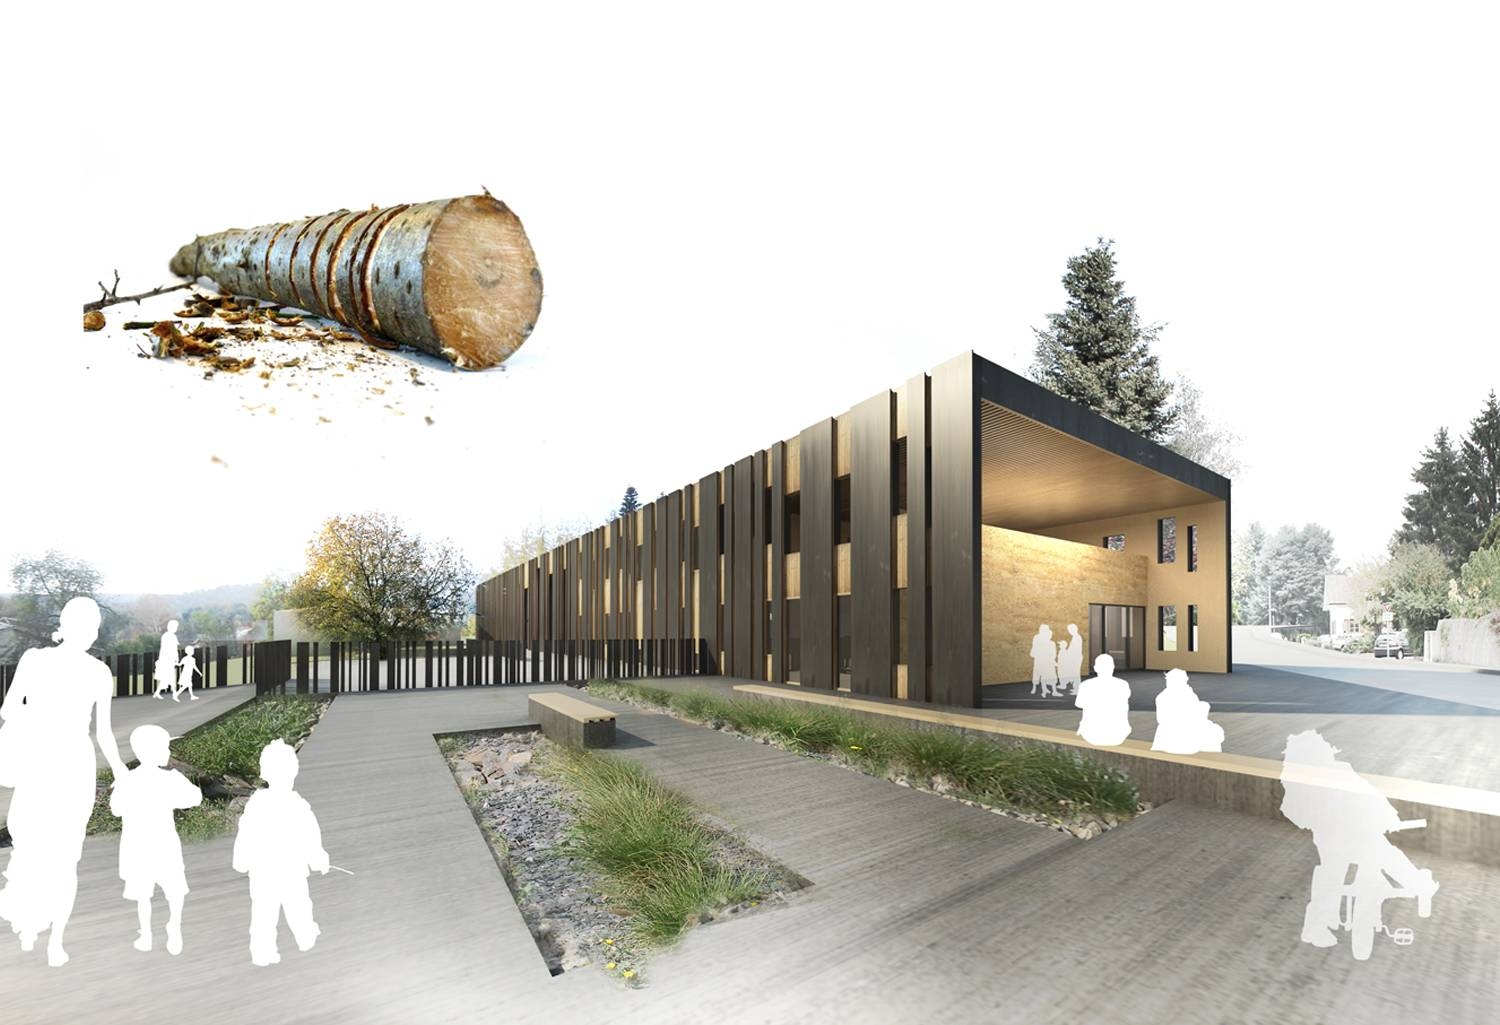 construction d'un groupe scolaire de 12 classes à albens – savoie